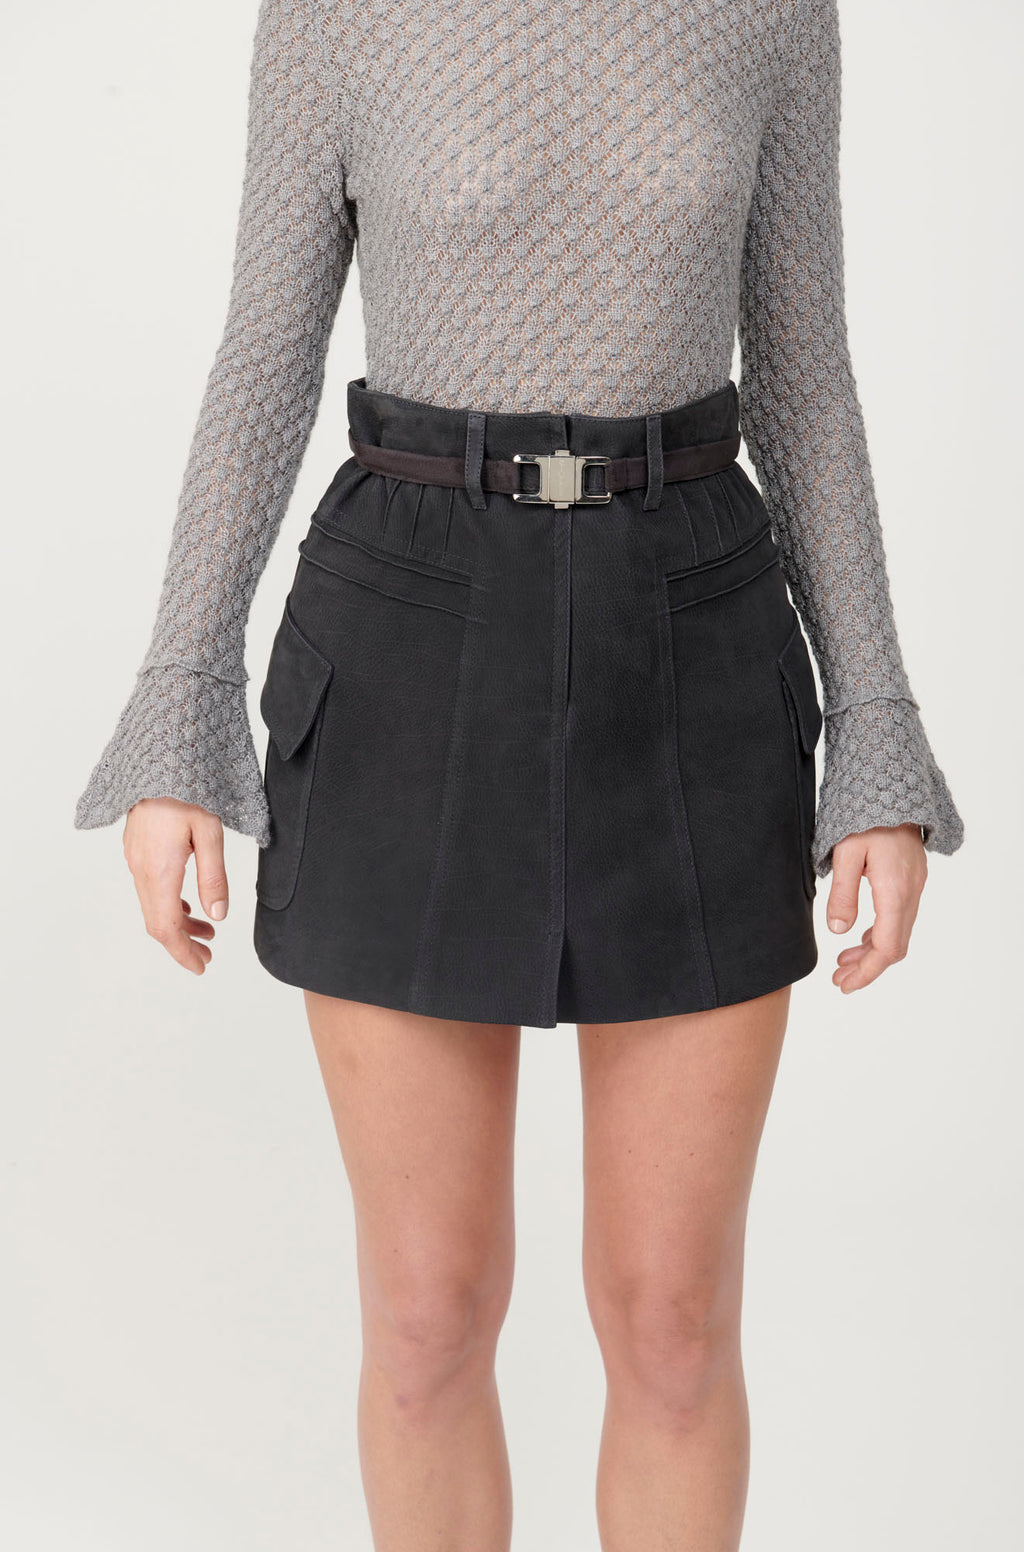 A-line Pocket Skirt with belt - My Graphiti